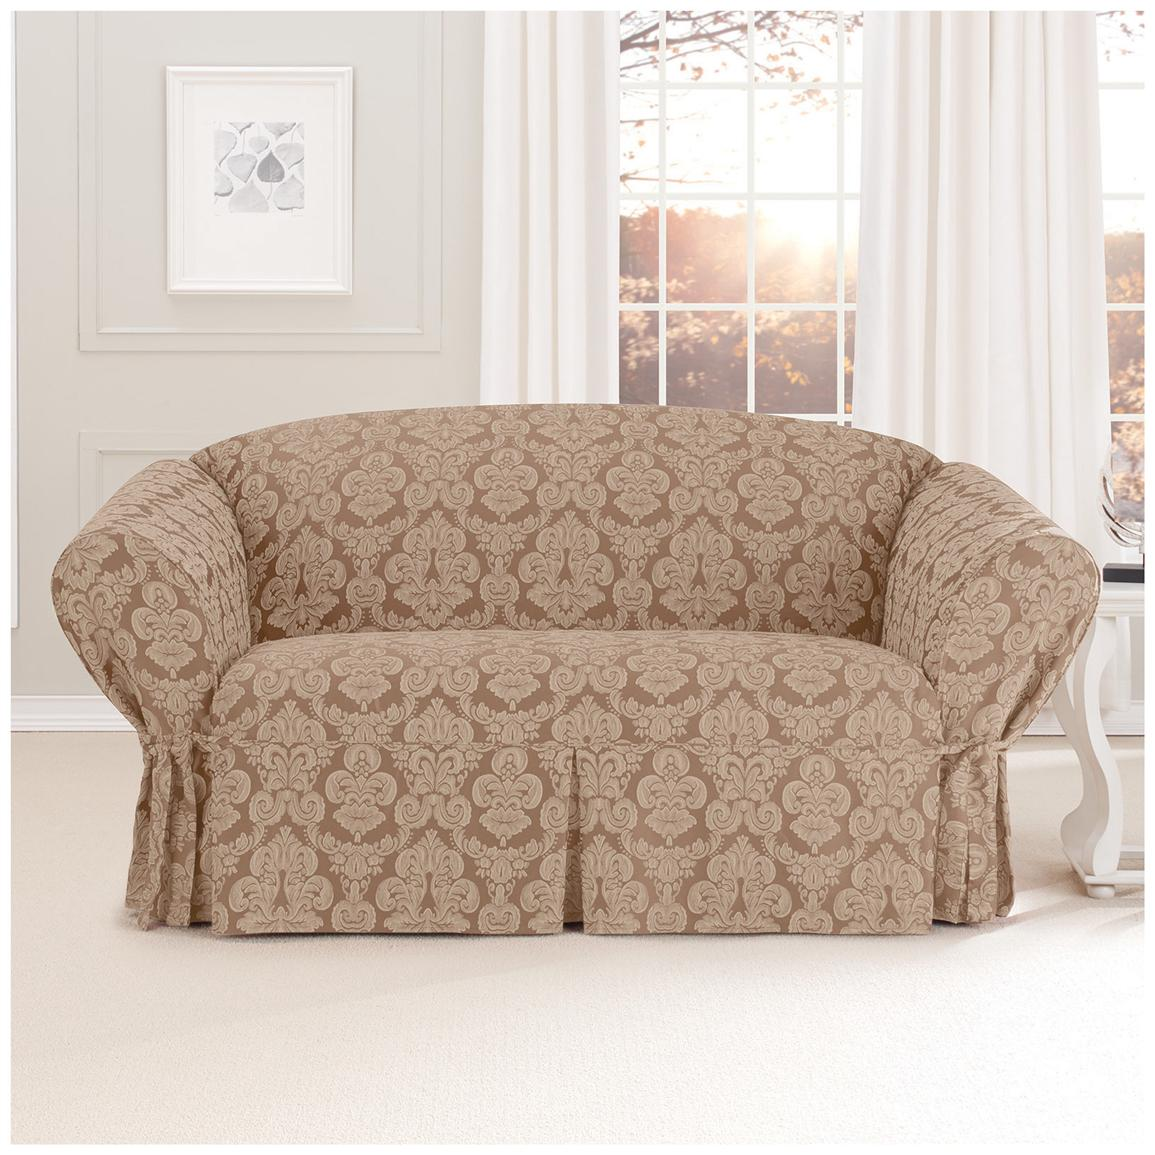 Sure Fit Middleton Loveseat Slipcover 581236 Furniture Covers At Sportsman 39 S Guide